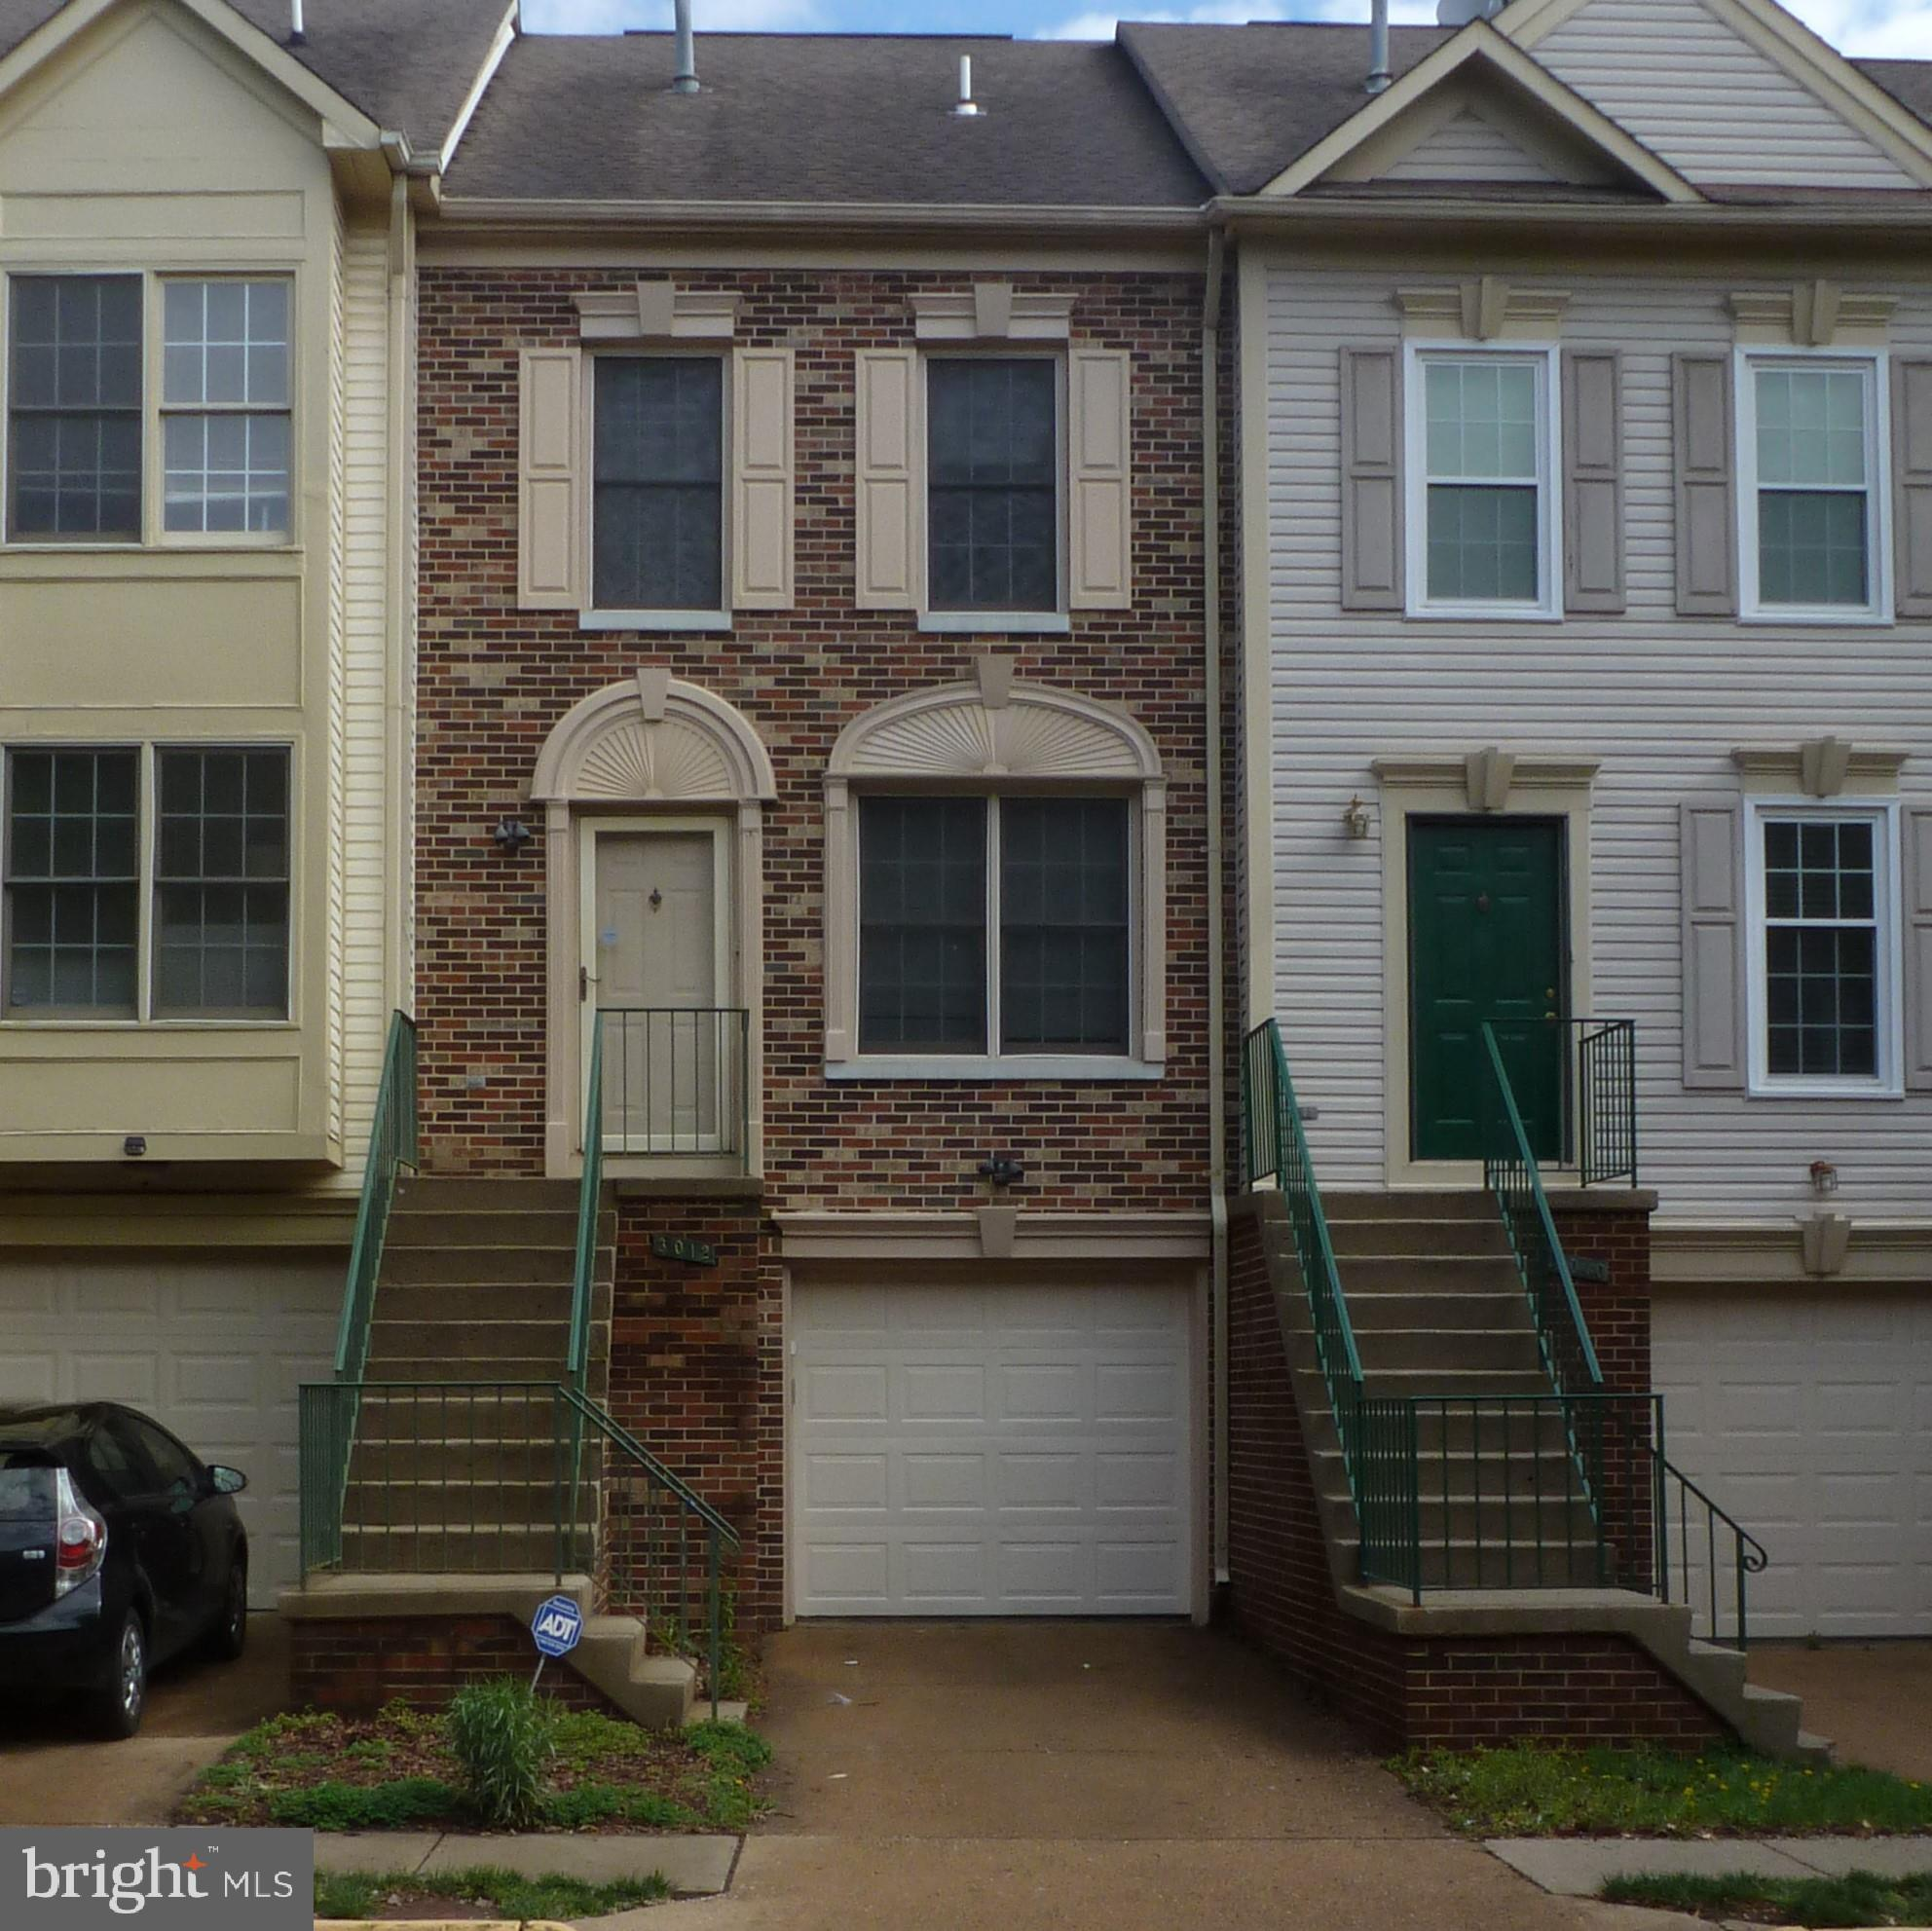 WONDERFUL 4 LVL TOWNHOUSE WITH 3 BEDROOMS/2.5 BATHS AND GARAGE.FRESH PAINT. HARDWOOD ON MAIN LEVEL. NEW HARDWOOD STAIRS.BRAND NEW LAMINATE FLOOR ON UPPER LEVELS, BASEMENT. NEW GRANITE COUNTERTOP & REFRIGERATOR.UPDATED BATHS: NEW TILES, TOILETS IN ALL BATHS; NEW VANITY SINKS IN BATHROOM 2 AND POWDER ROOM.DECK FOR SUMMER FUN.FIREPLACE IN REC ROOM.  1 PARKING STICKER FOR VISITOR.CLOSE TO SHOPPING, ENTERTAINMENT AND METRO TRANSPORTATION. CLOSE TO OLD TOWN, DC AND FT BELVOIR.MOVE IN READY.